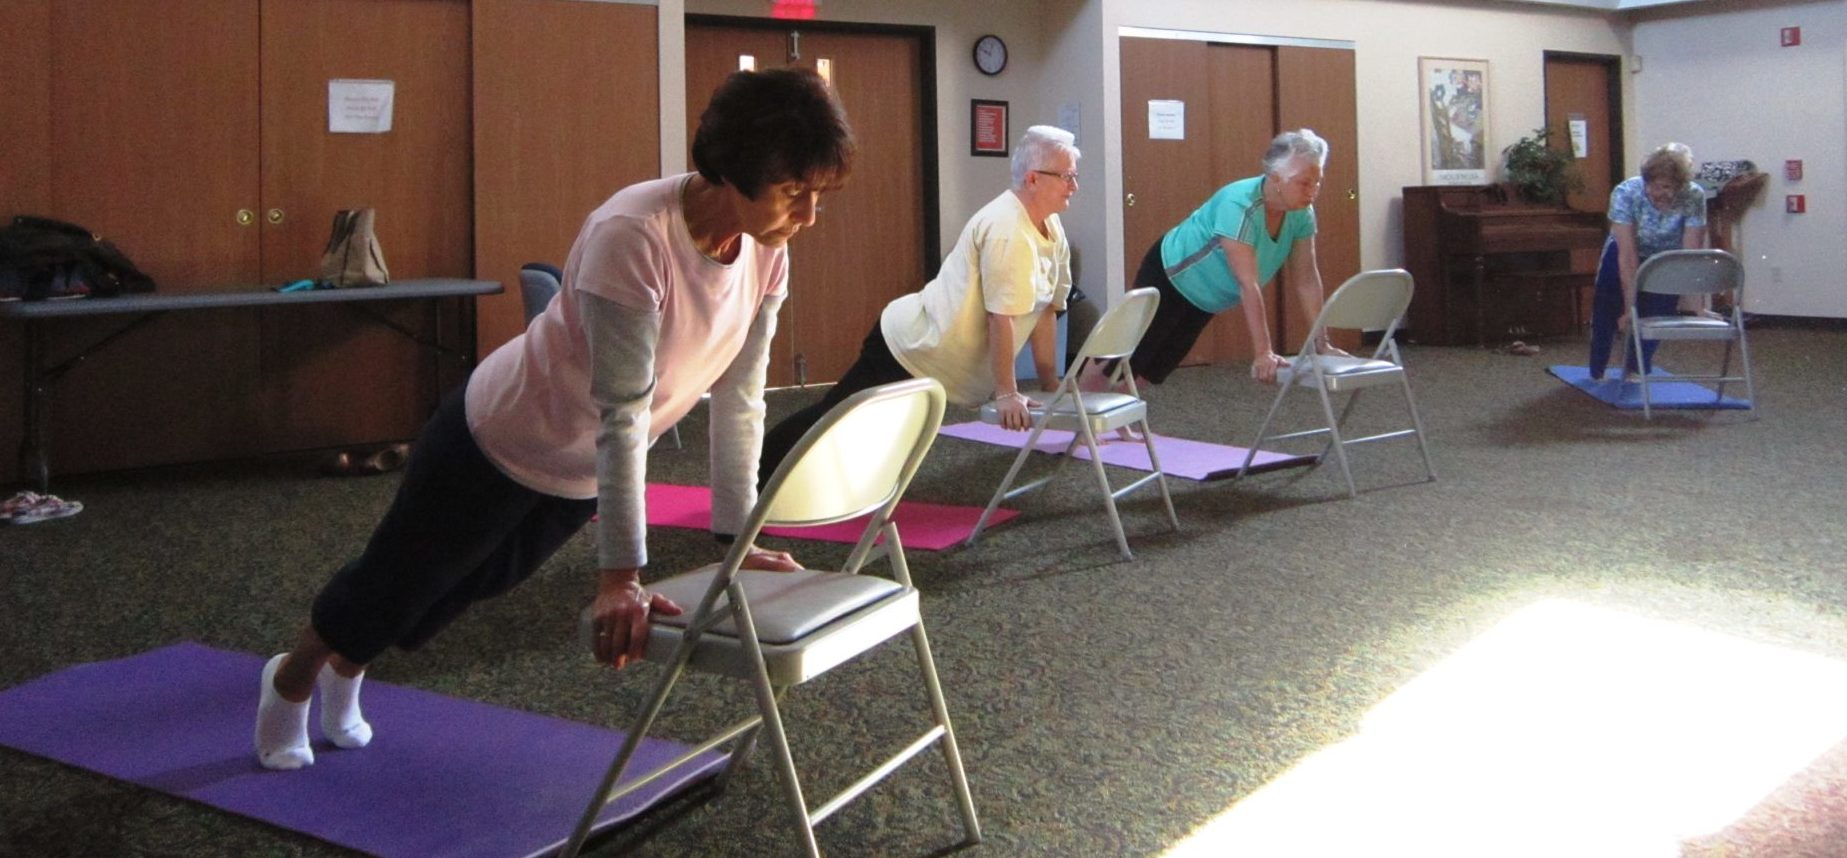 Students participate in wellness class at the YWCA Westmoreland County.